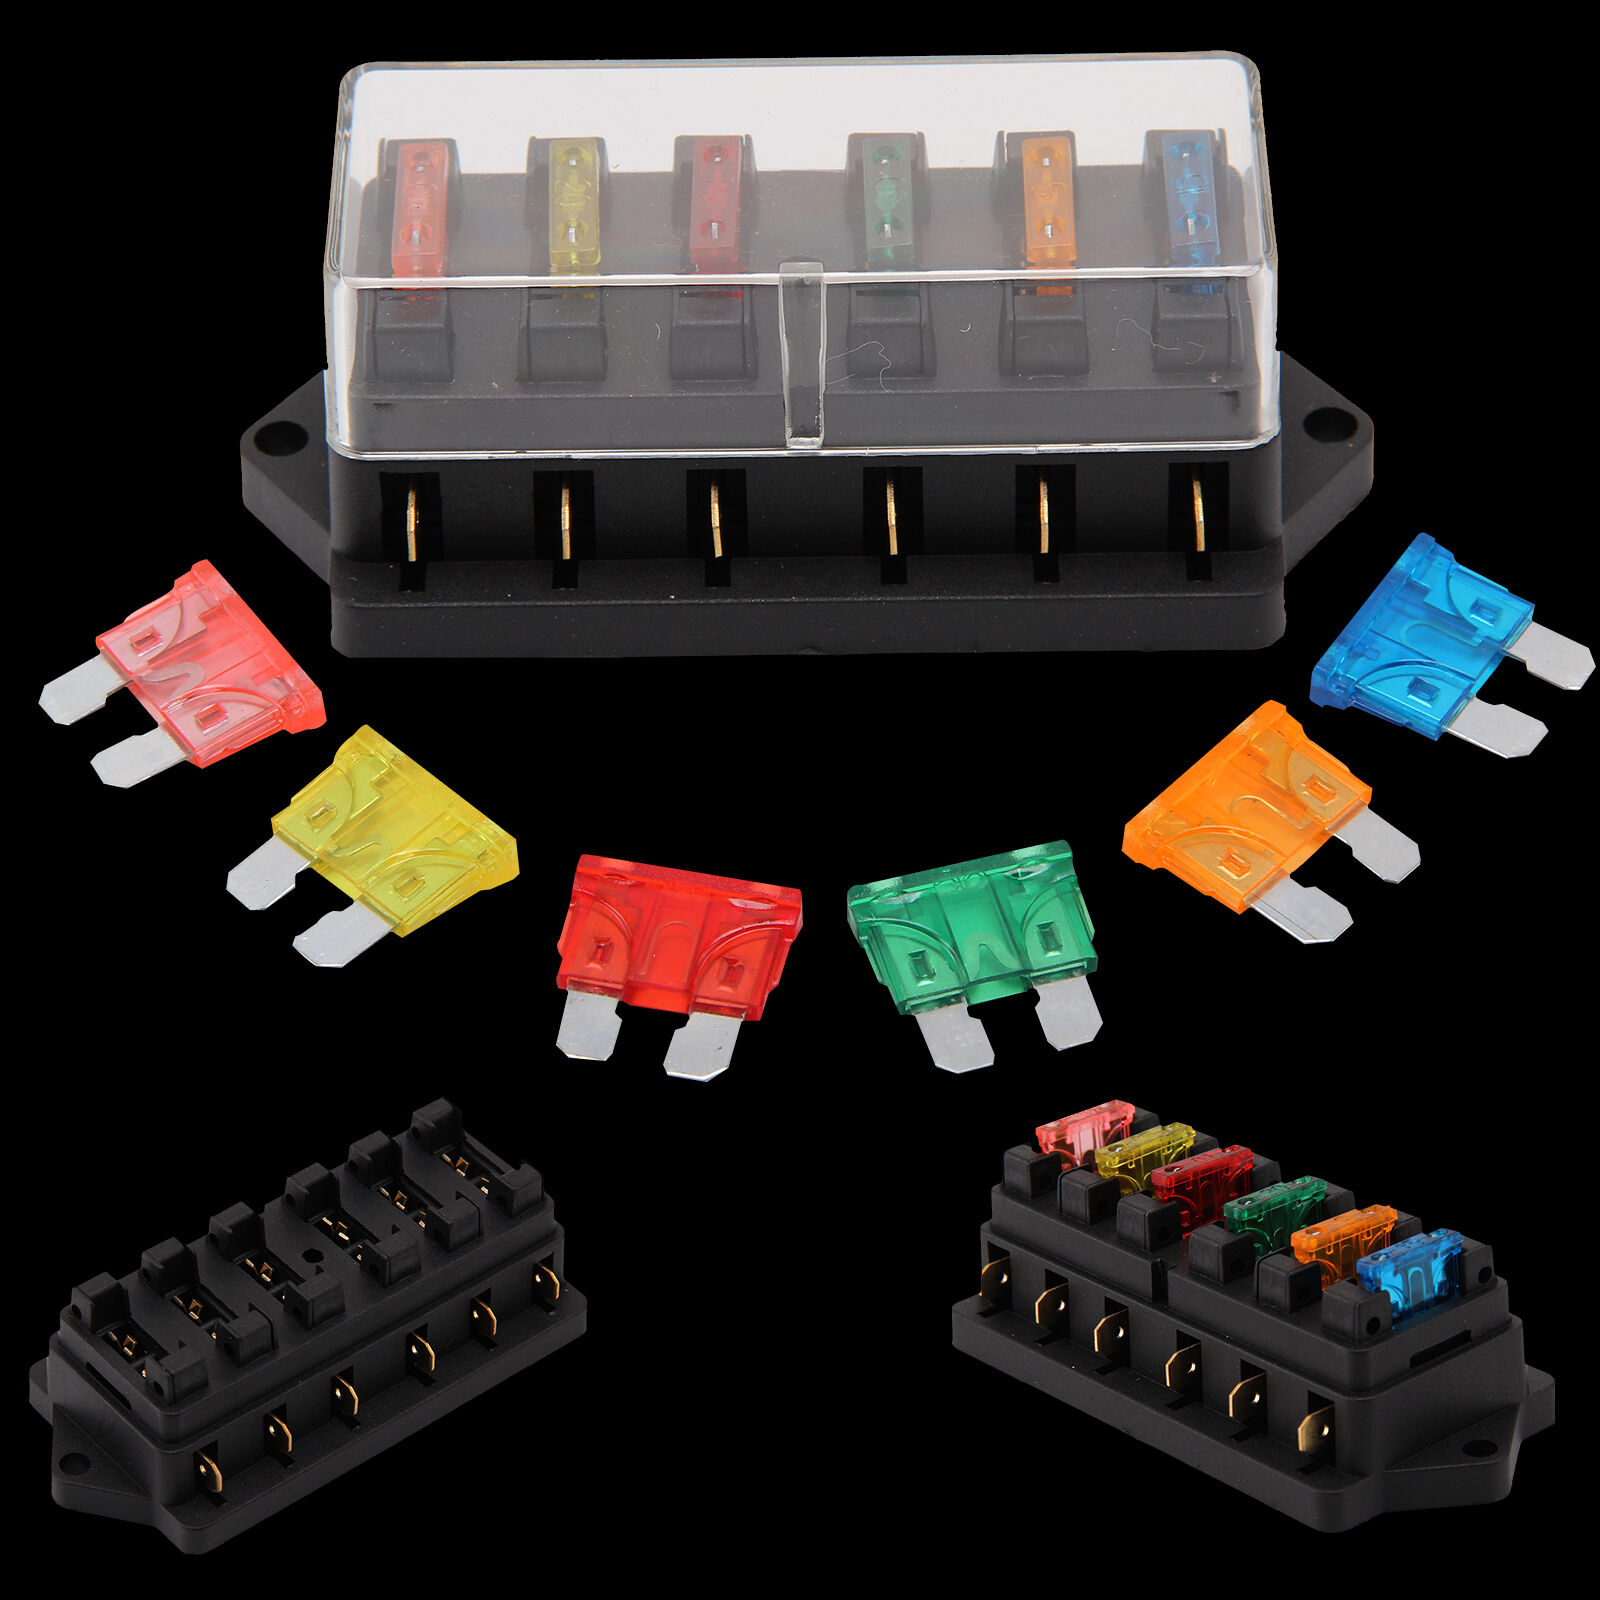 12v 24v Universal Car 6 Way Circuit Standard Blade Fuse Box Holder Ab